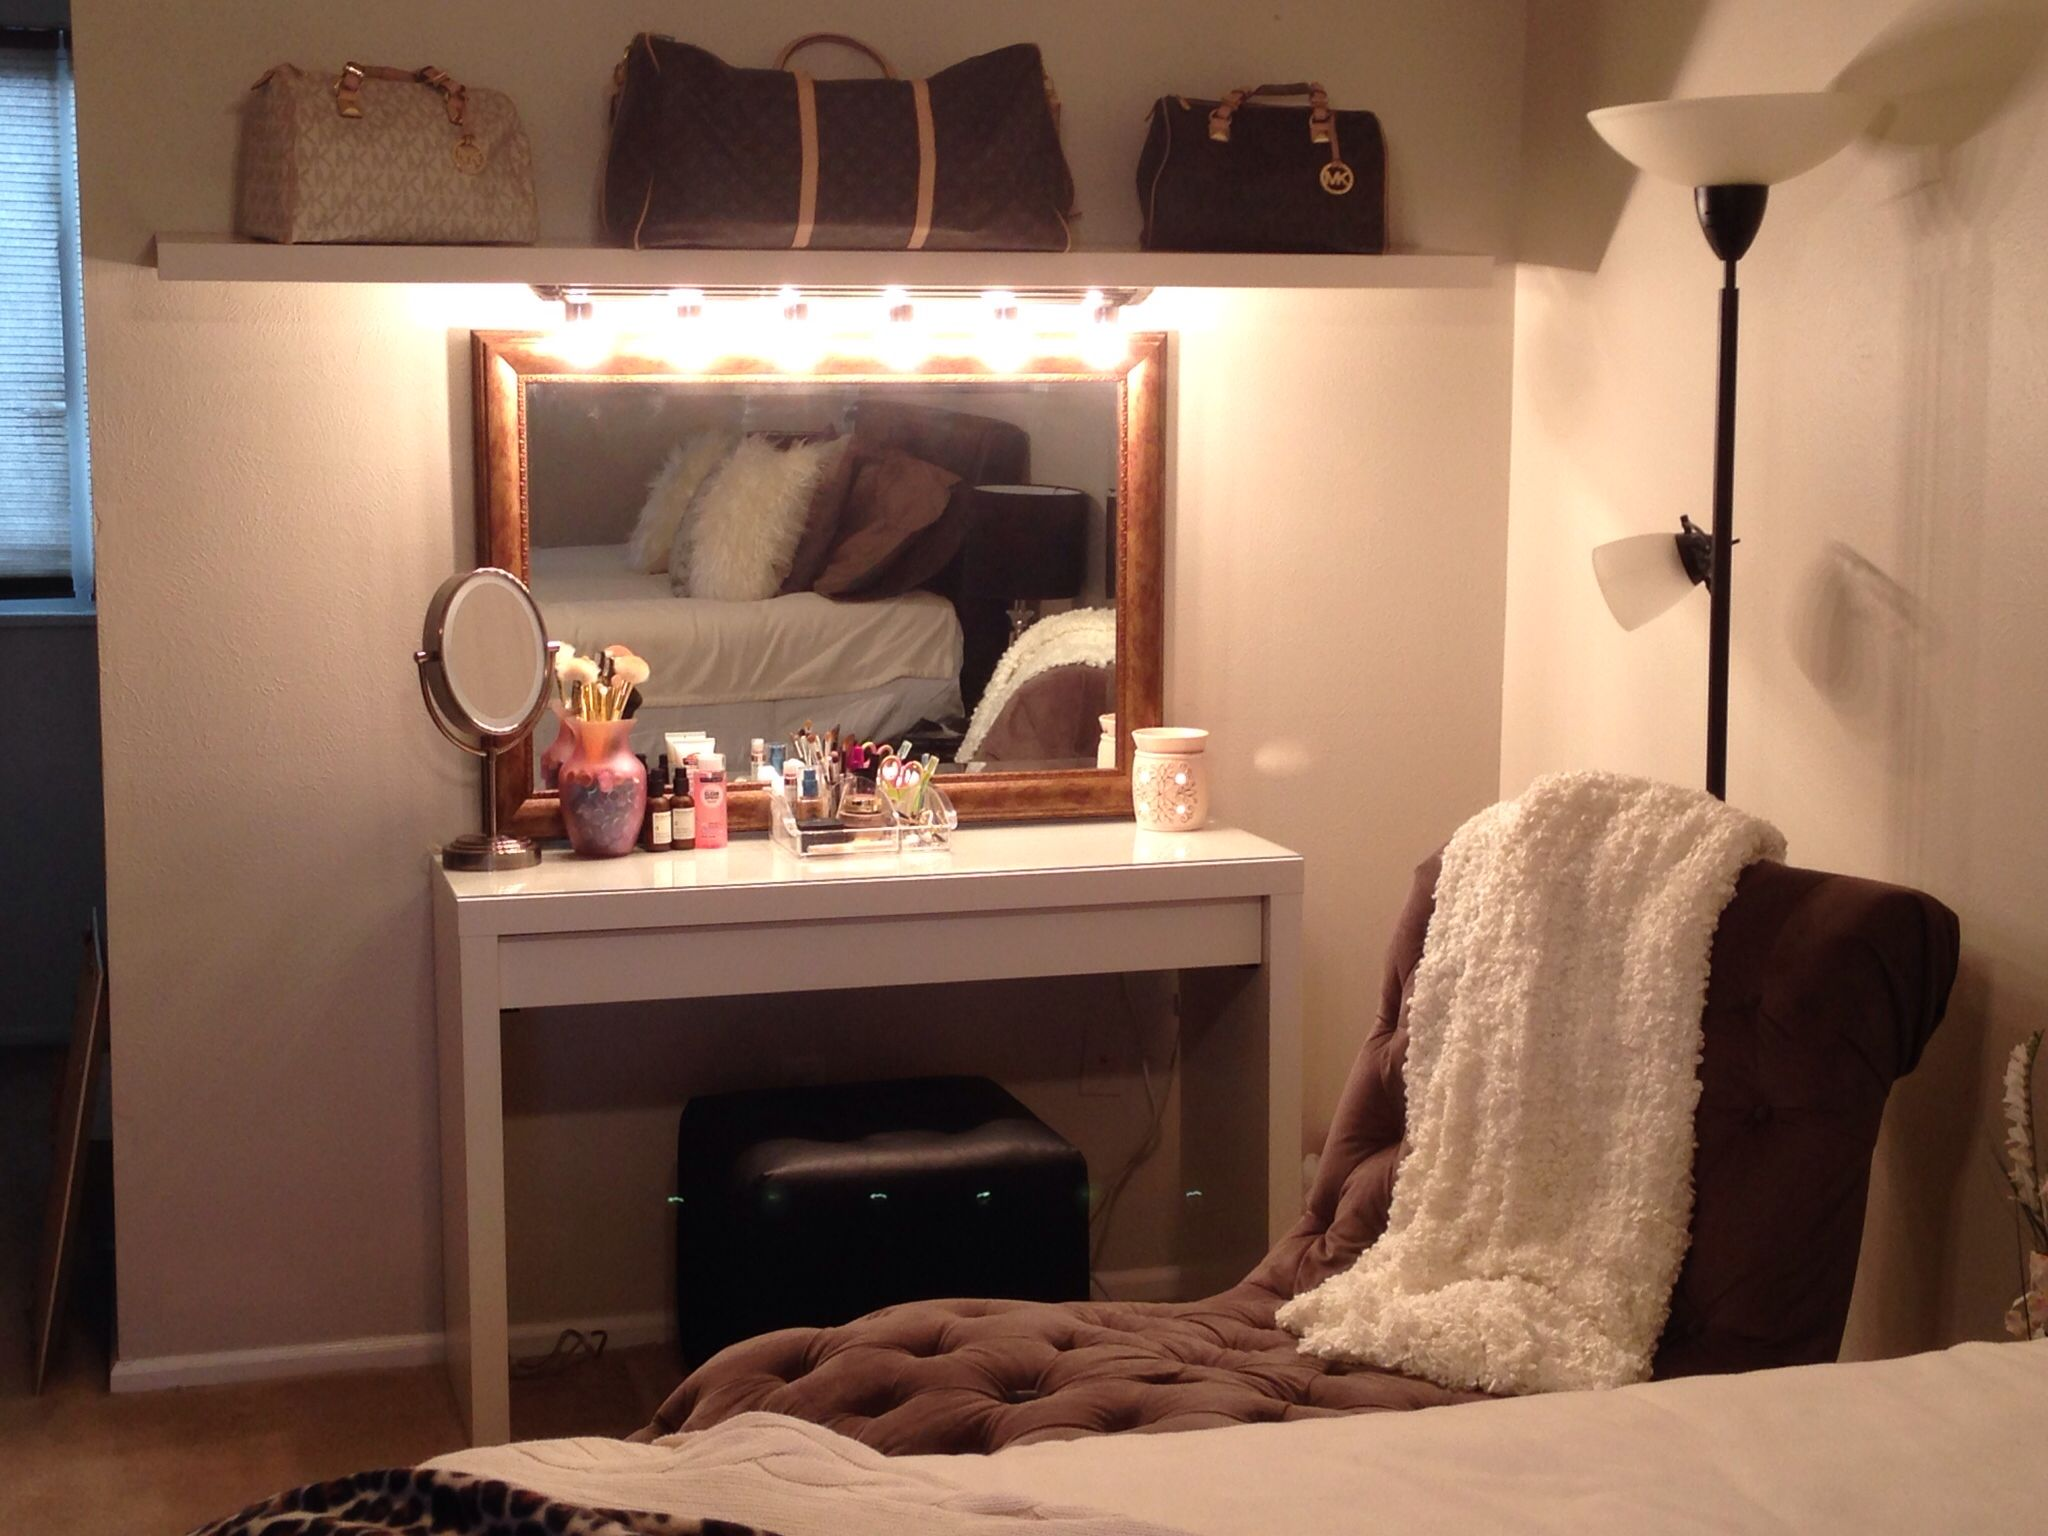 lights with affair diy step blog a great makeup oksunglassesn mirror vanity us light love by vanities